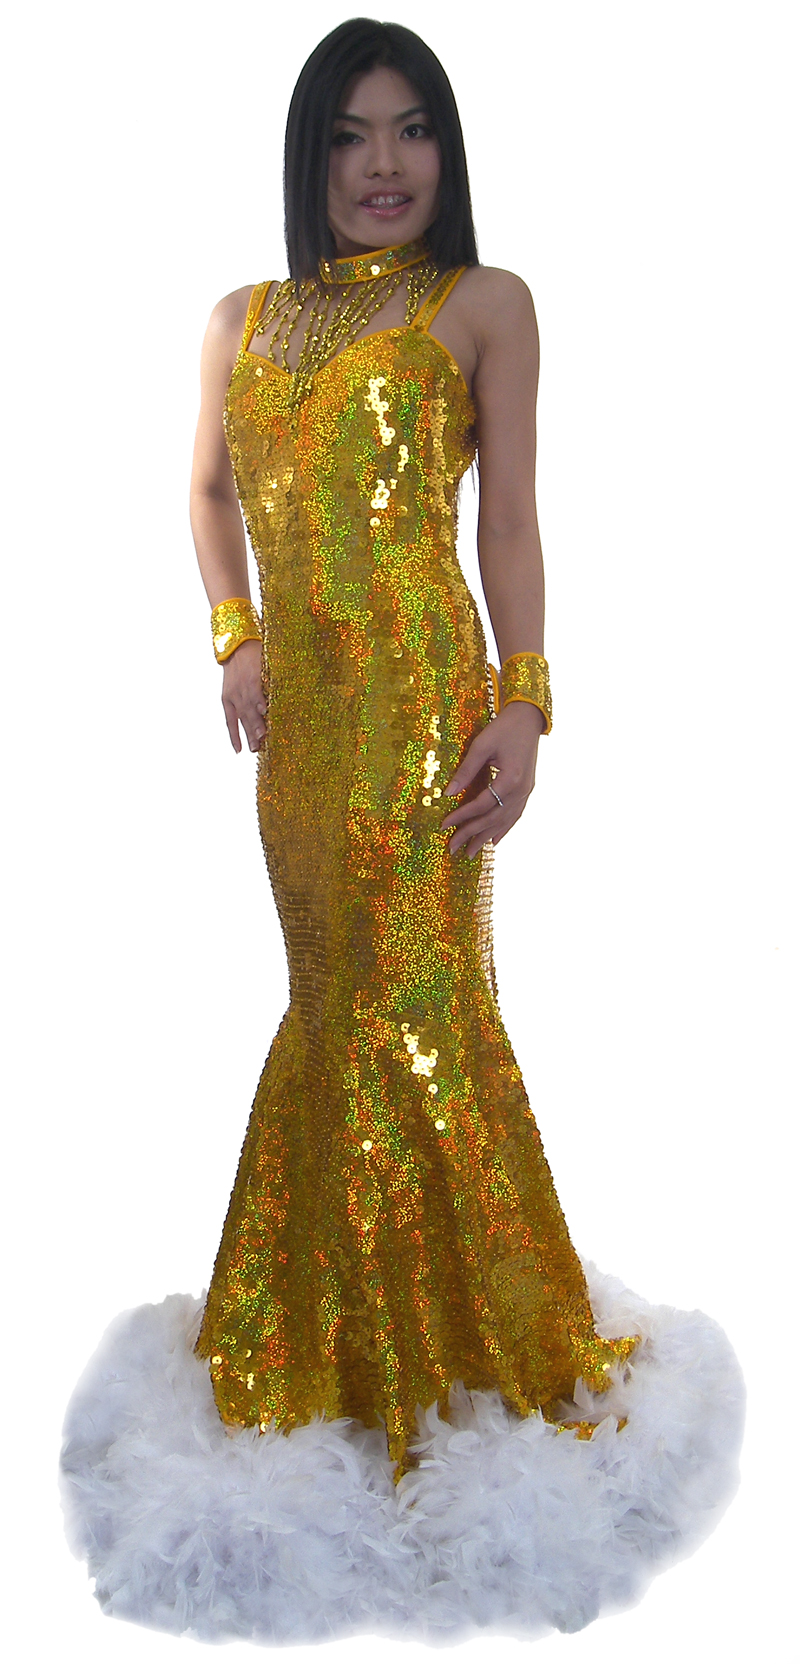 https://michaeljacksoncelebrityclothing.com/sequin-drag-ball-gown/TM2011-sequin-prom-ball-gown.jpg